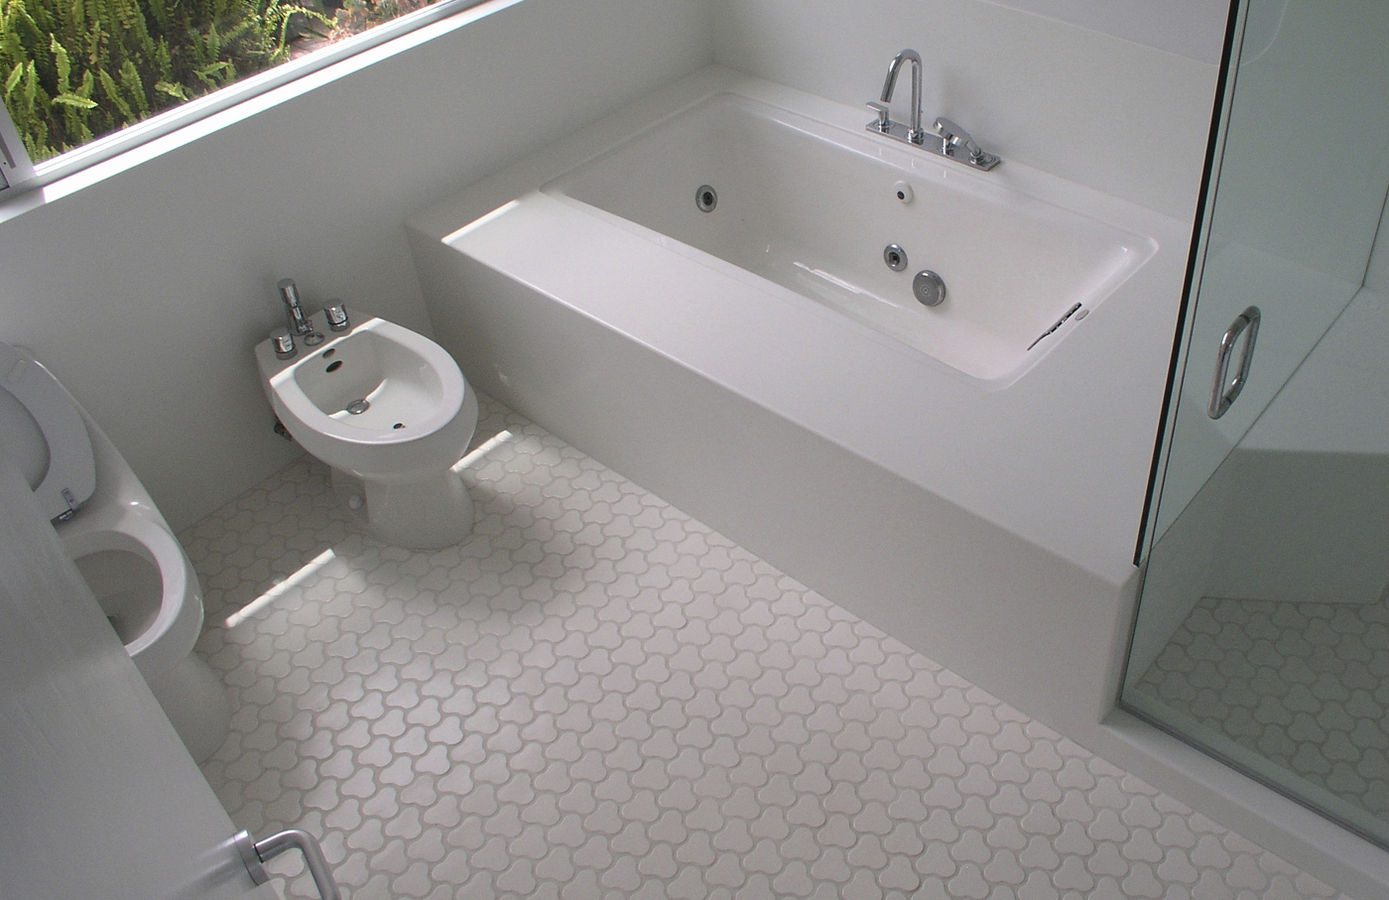 Adorable Glass Floor Tile Bathroom Of White Themed Design With Built In Bathtub